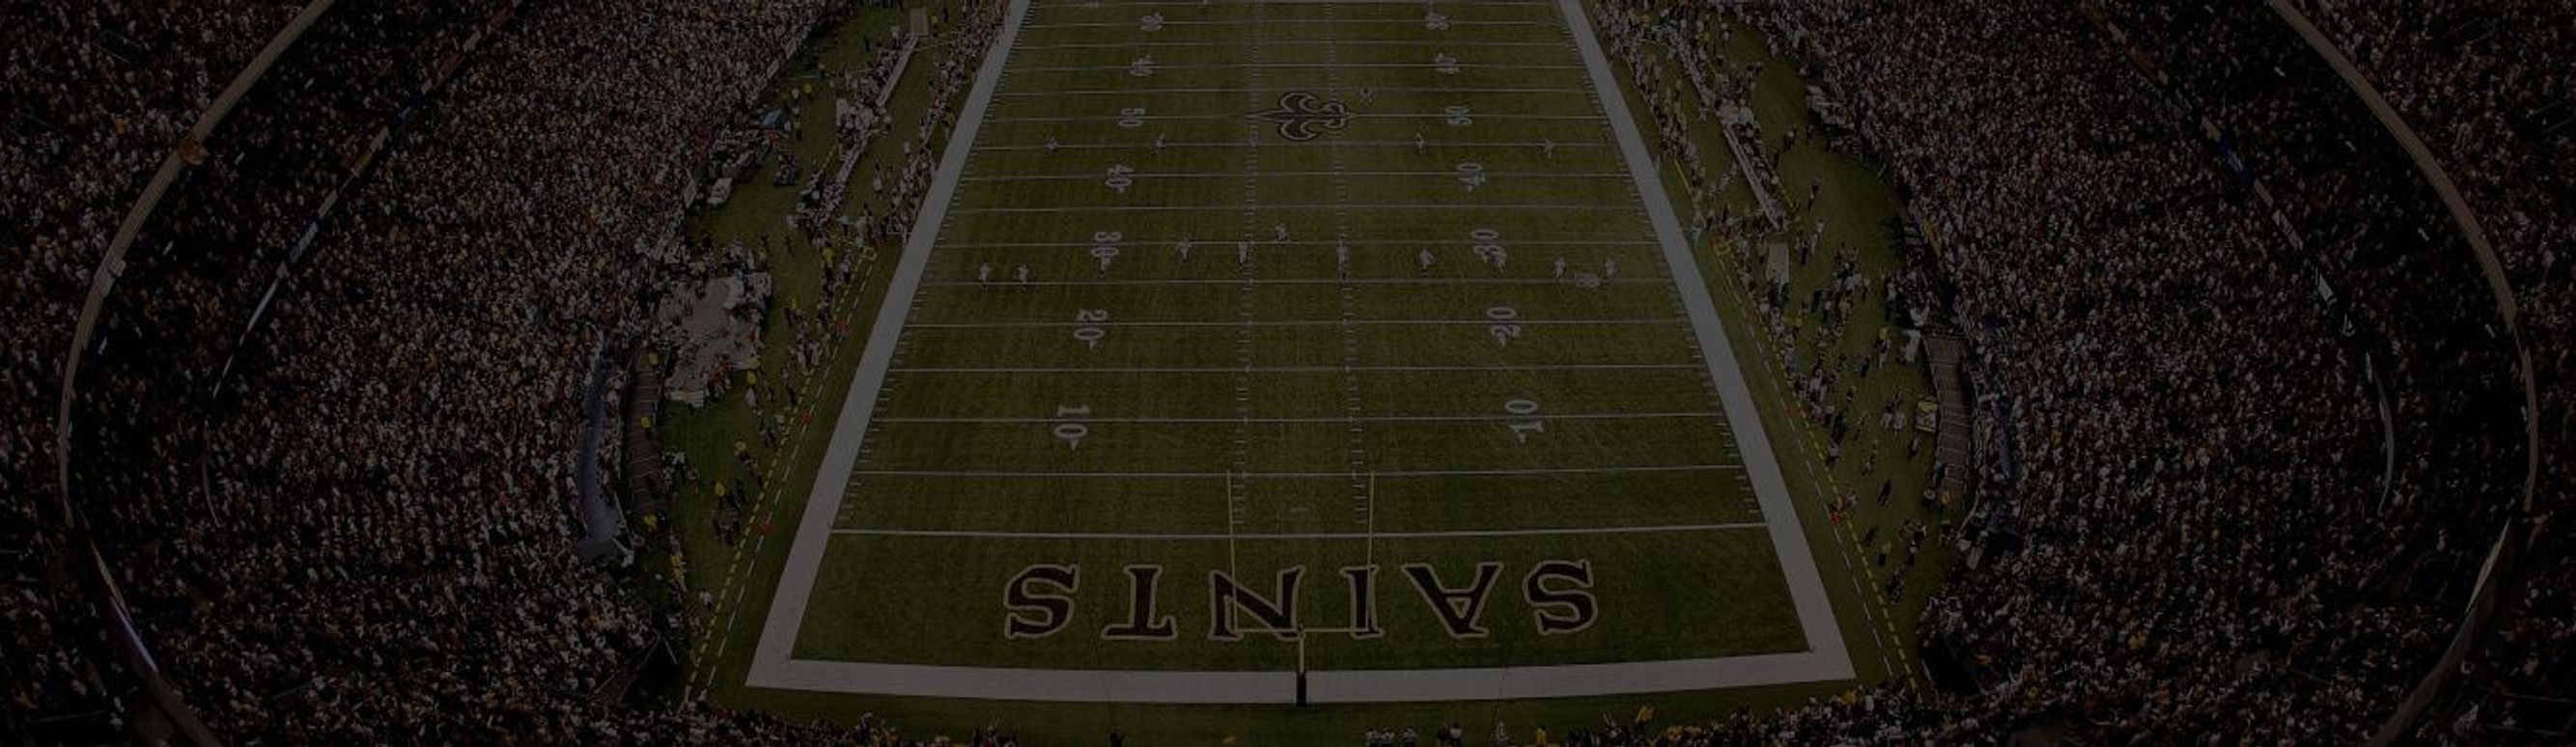 Atlanta Falcons v New Orleans Saints at the Superdome in New Orleans, Louisiana.